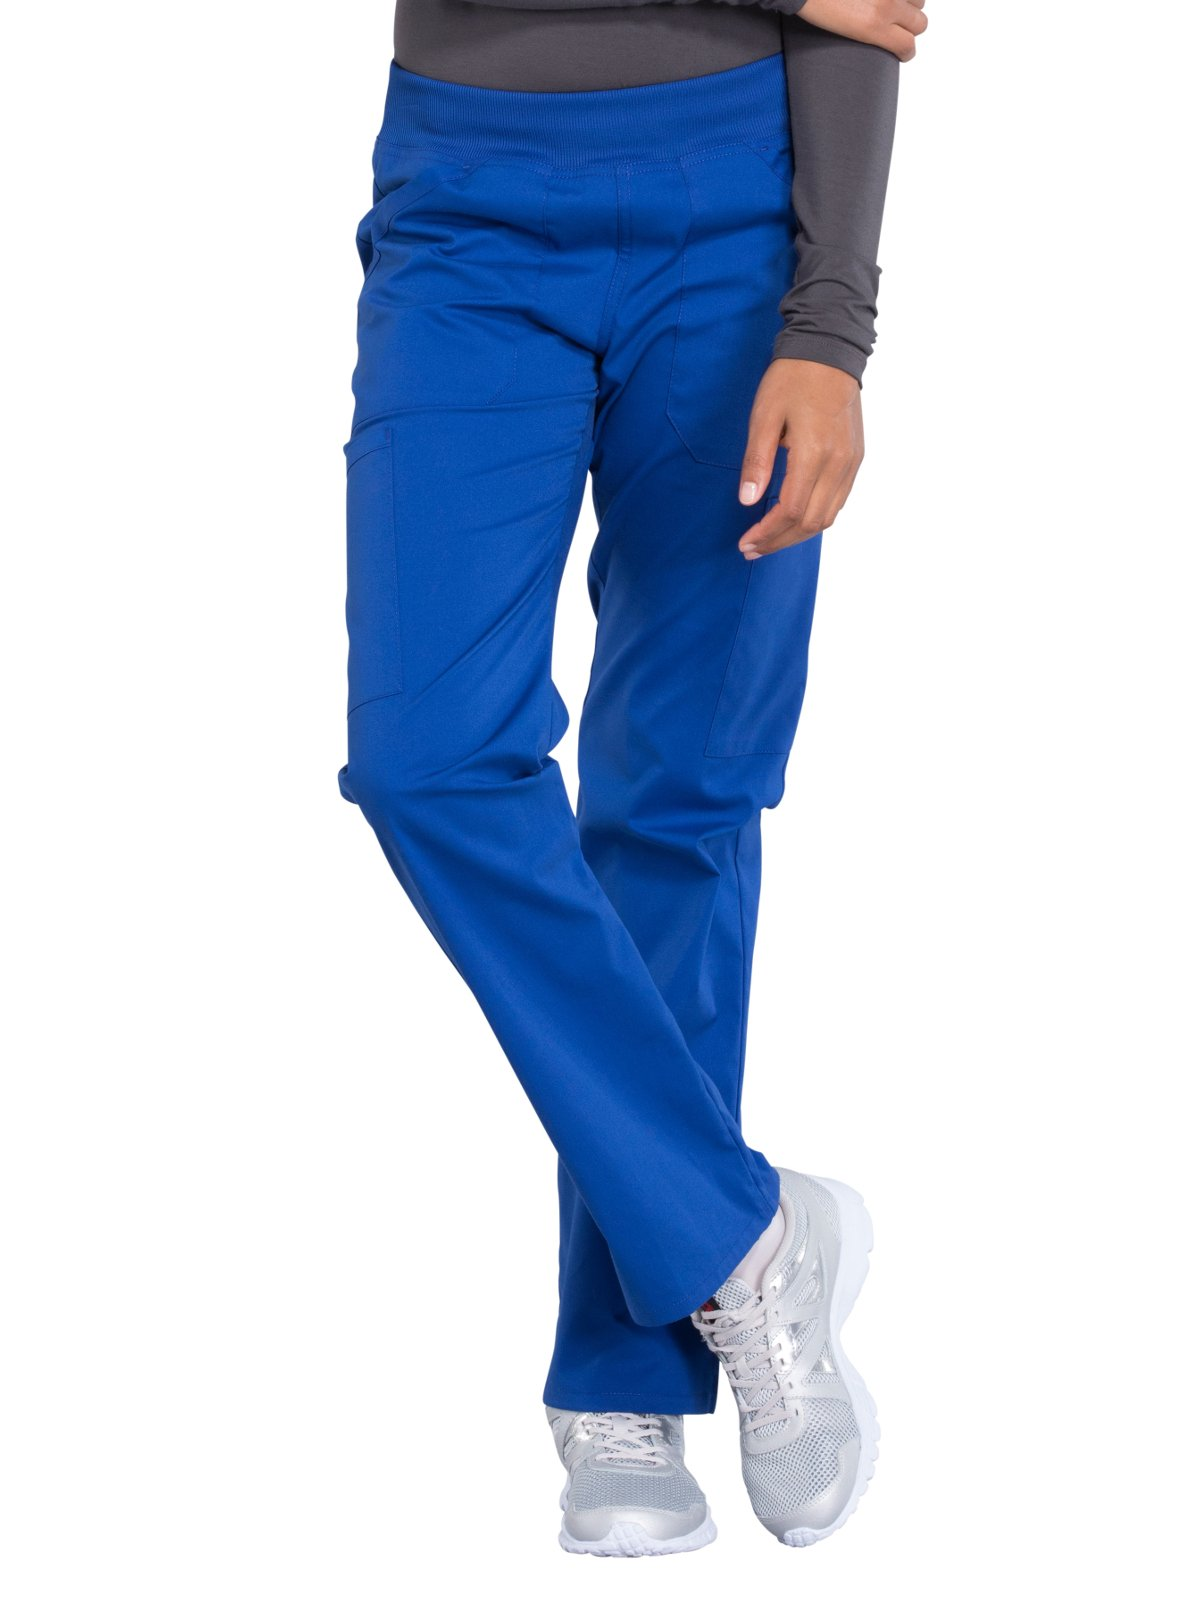 Cherokee Professionals by Workwear Women's Elastic Waistband Pull On Cargo Scrub Pant XX-Large Petite Galaxy Blue